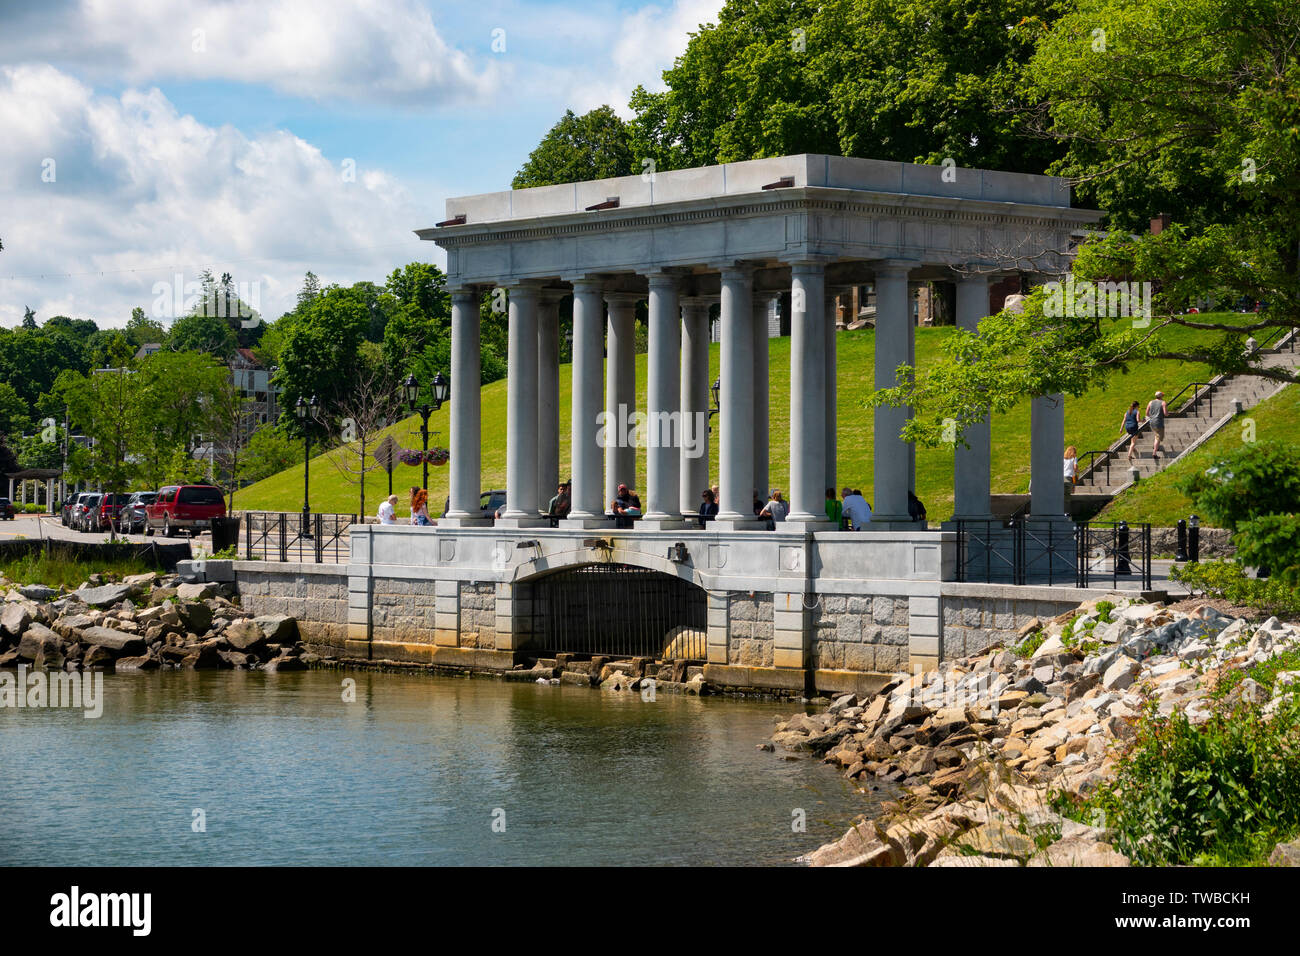 usa-ma-massachusetts-plymouth-plimouth-plymouth-rock-on-the-shores-of-plymouth-bay-where-the-pilgrims-were-said-to-have-first-landed-TWBCKH.jpg